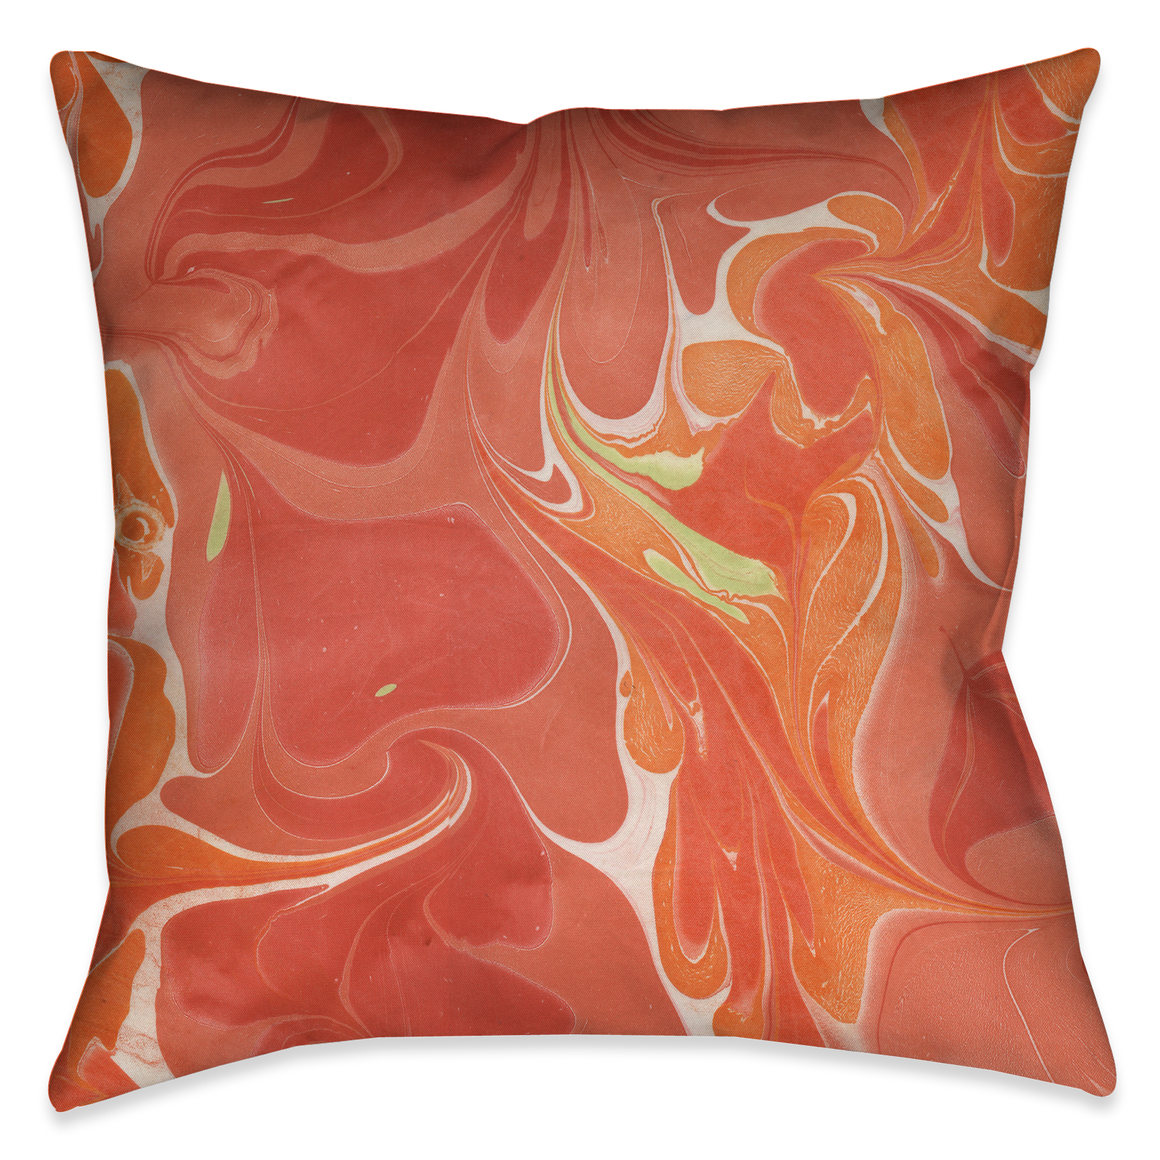 Persimmon II Marble Outdoor Decorative Pillow